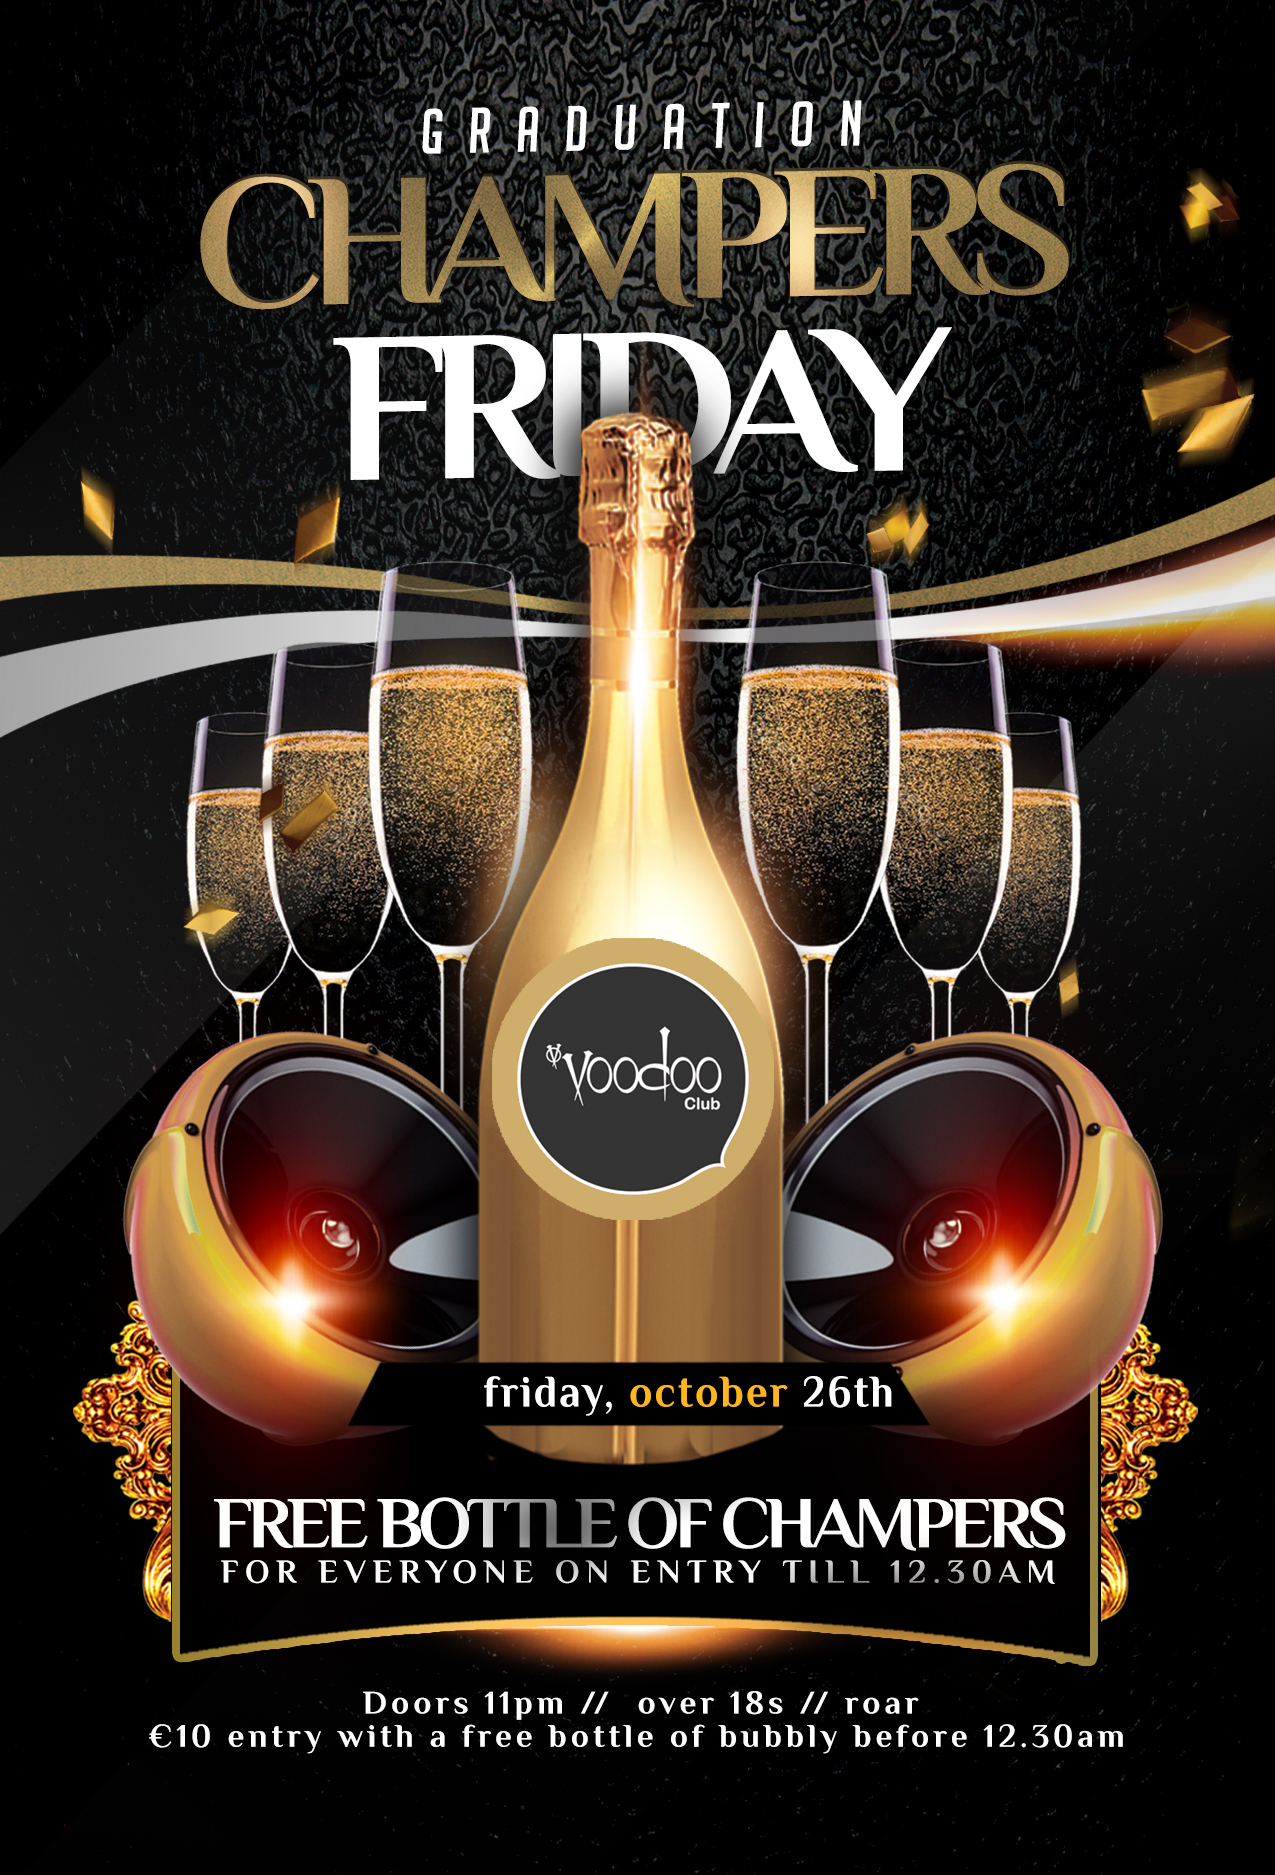 VOODOO--champers-friday-graduation-oct-26-2018.jpg